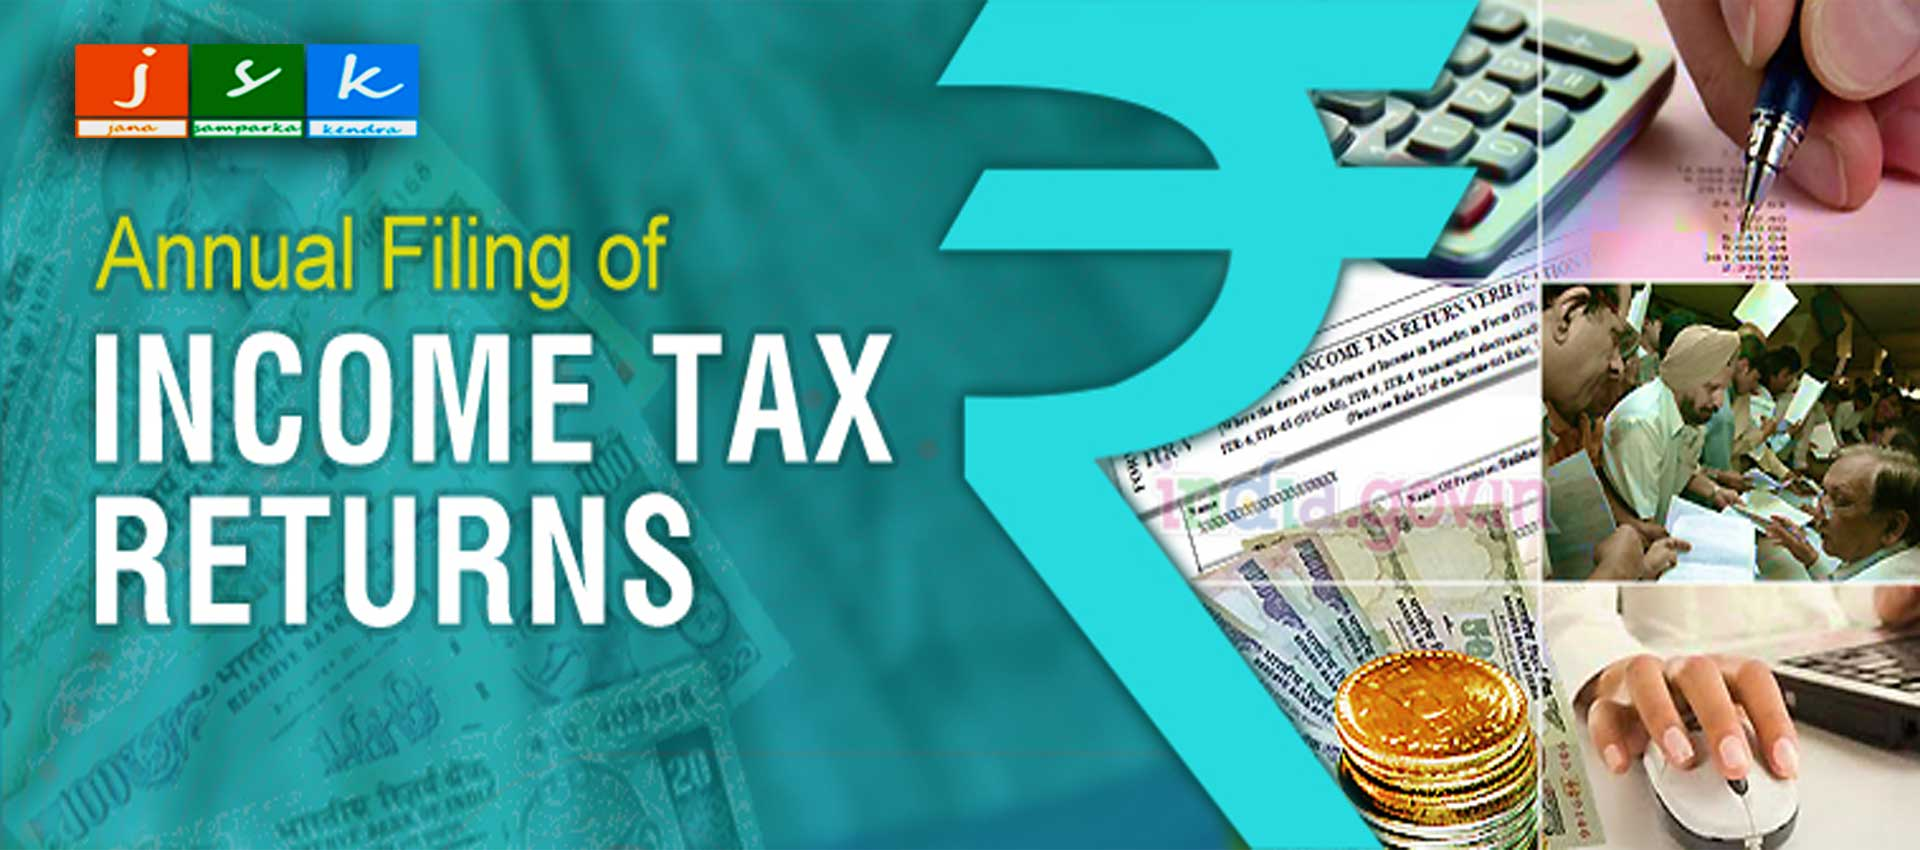 JSK INCOME TAX